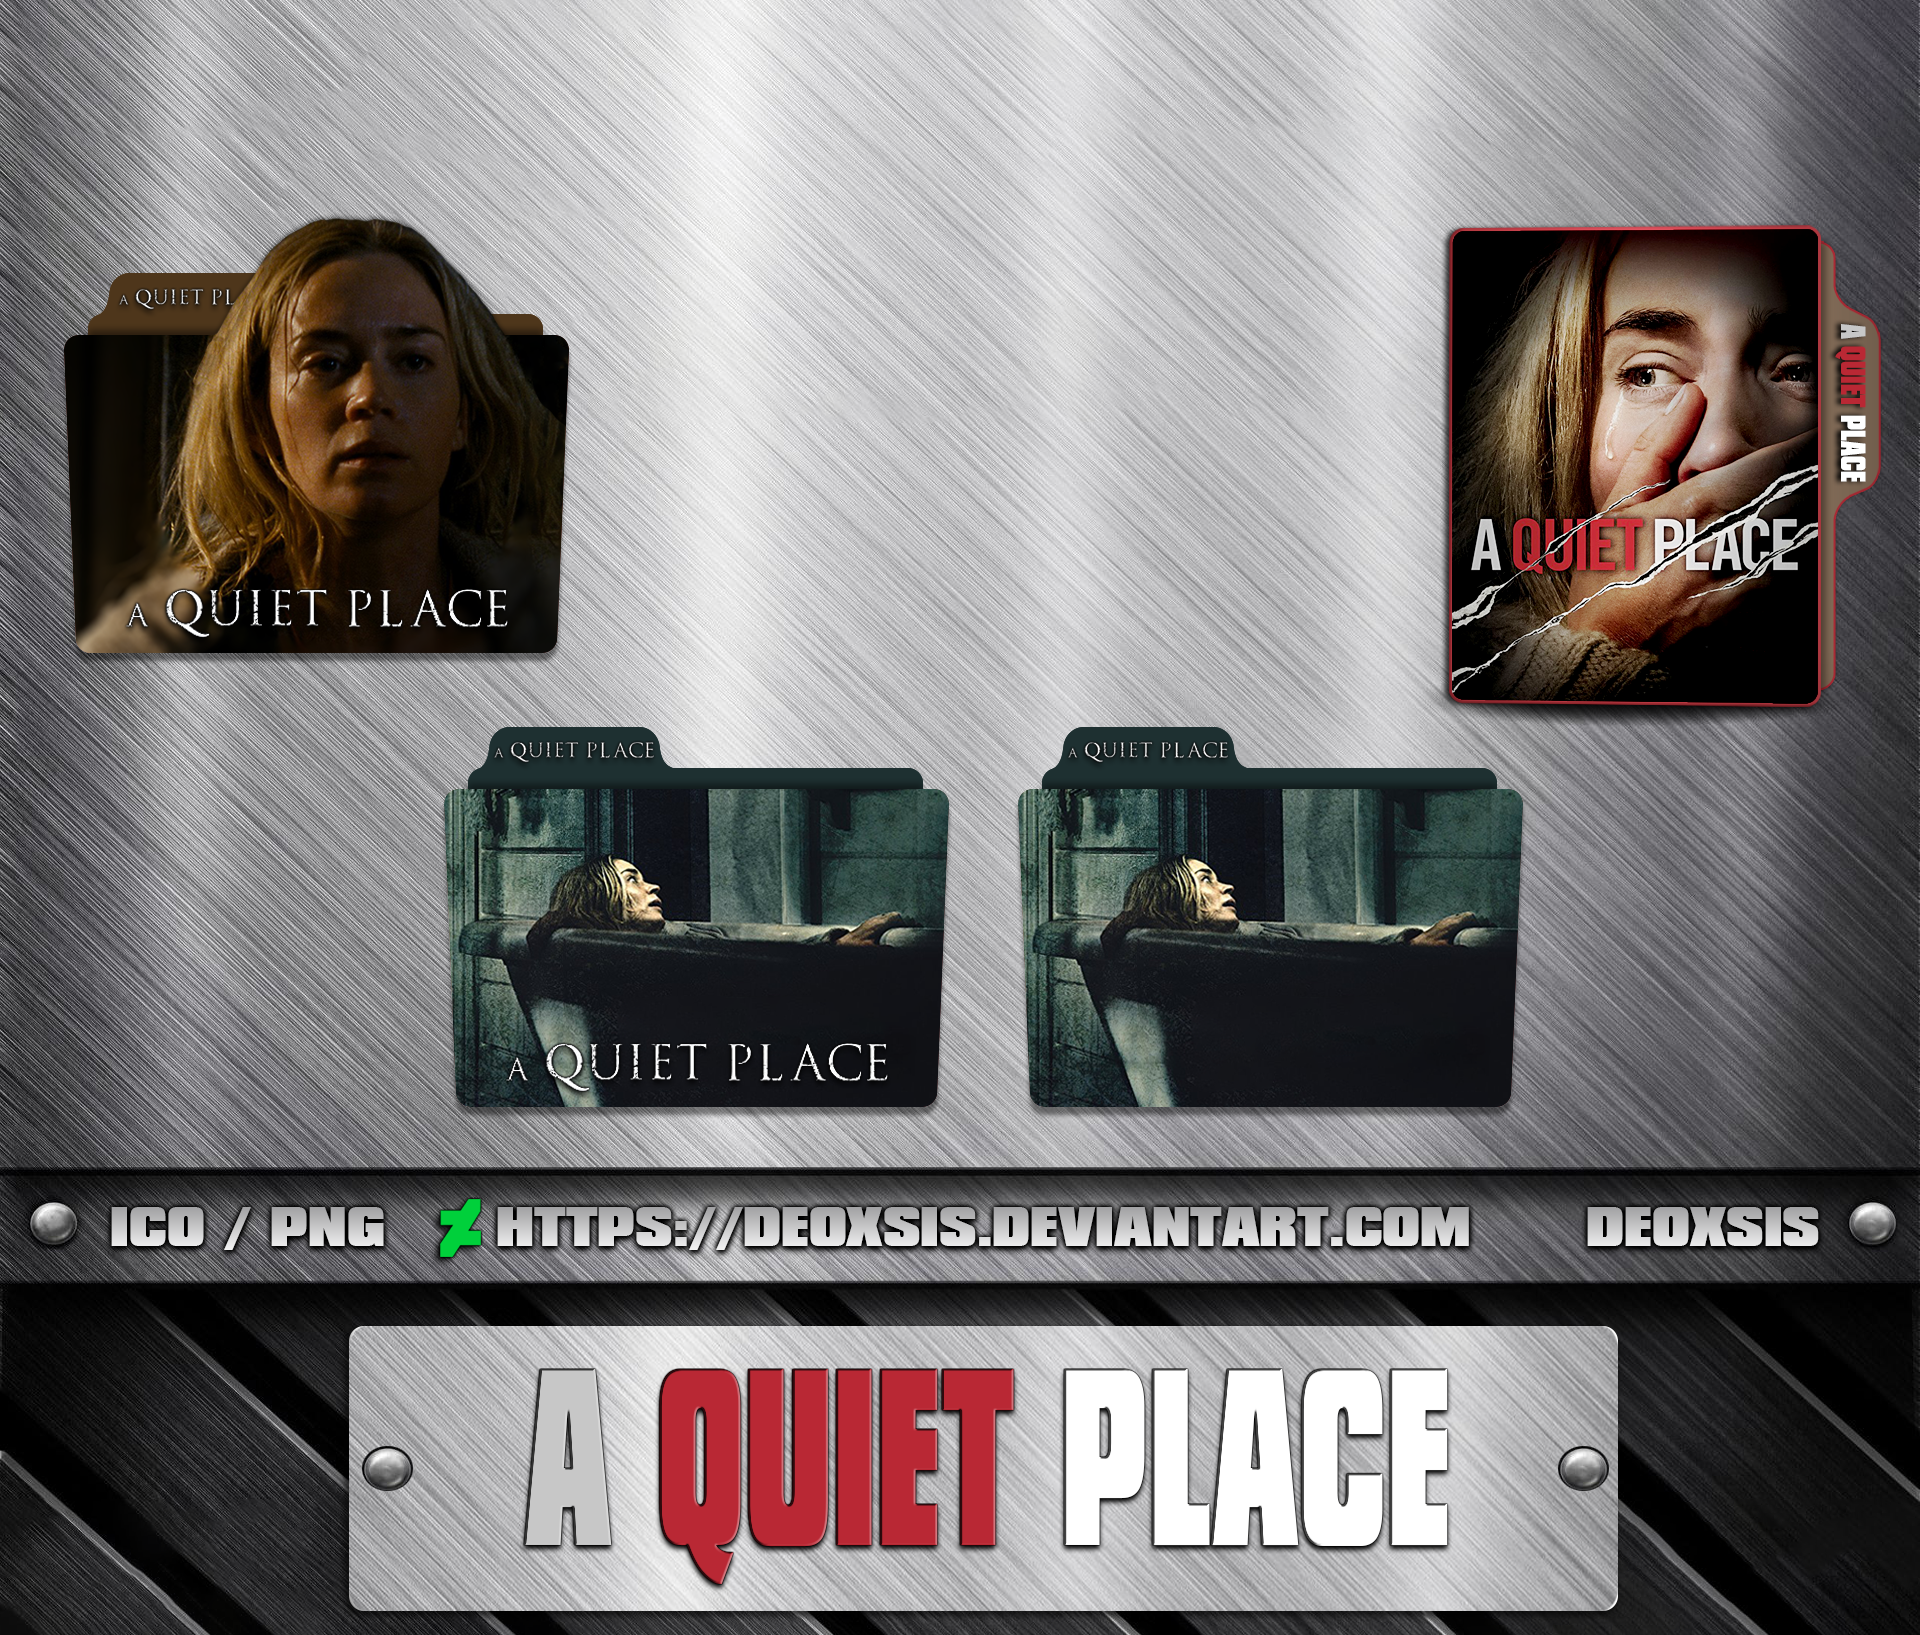 A Quiet Place 2018 Folder Icon Pack By Deoxsis On Deviantart